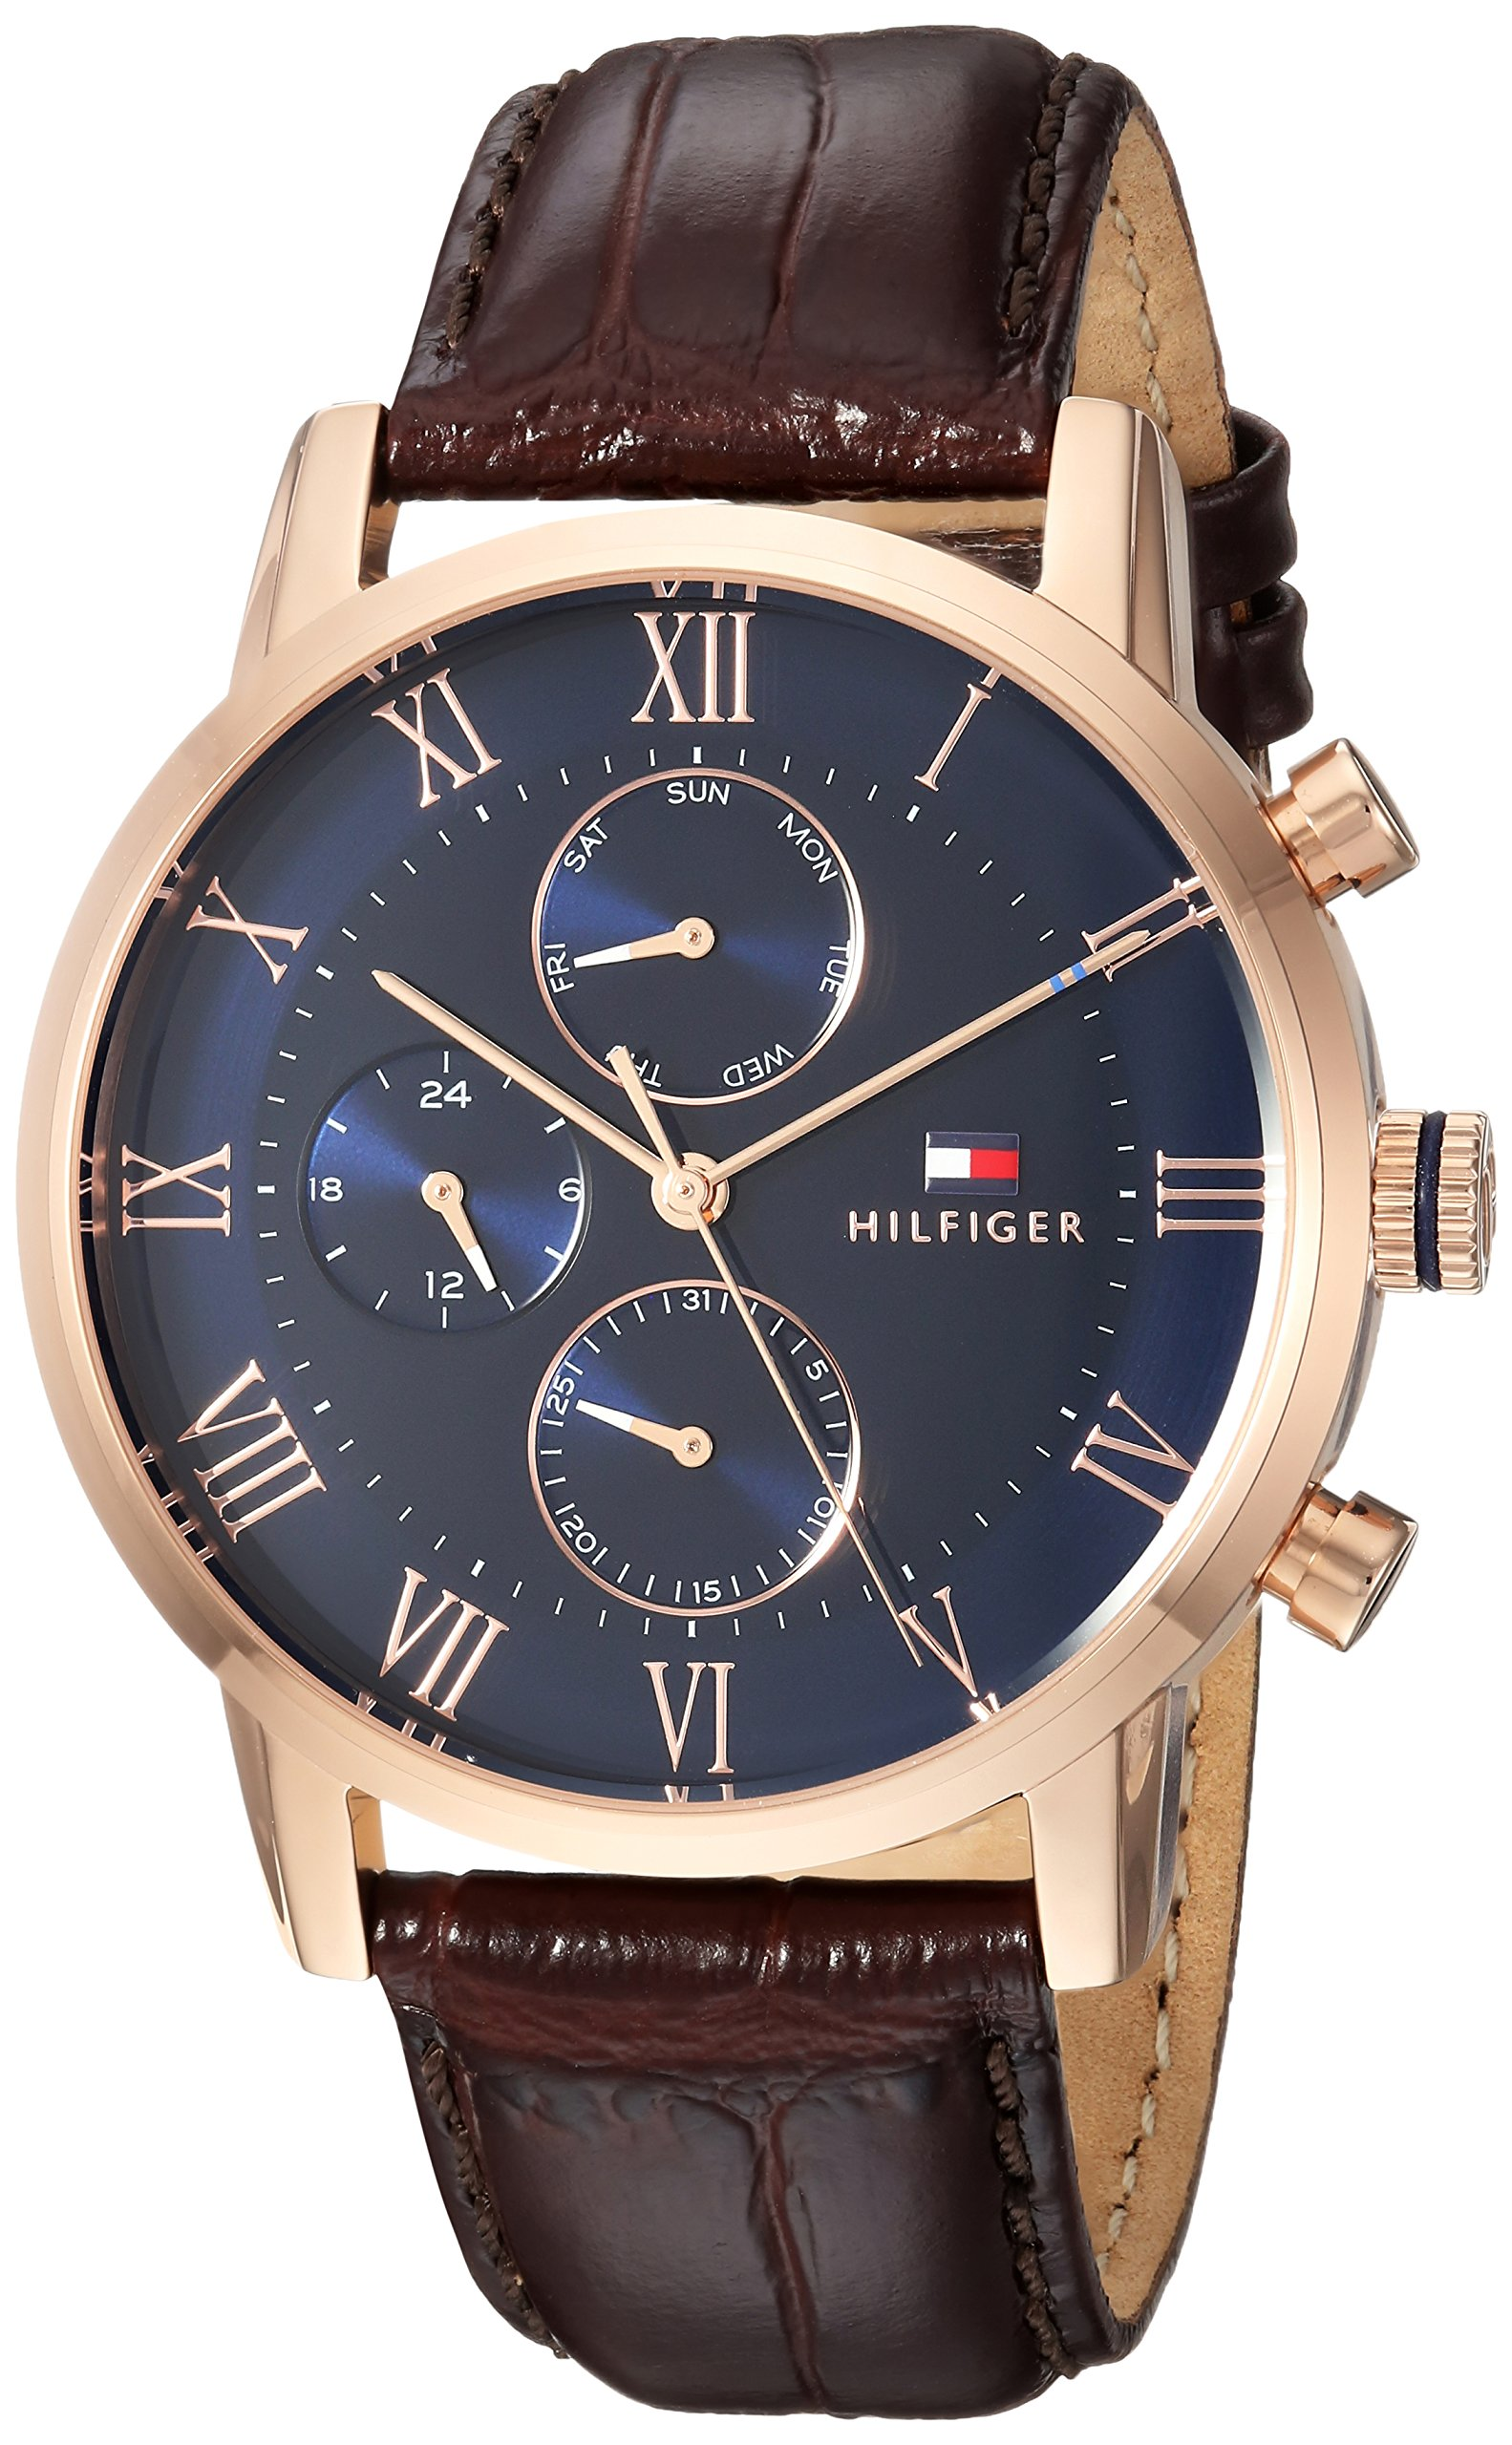 Tommy Hilfiger Men's 'SOPHISTICATED SPORT' Quartz Gold and Leather Casual Watch, Color:Brown (Model: 1791399)